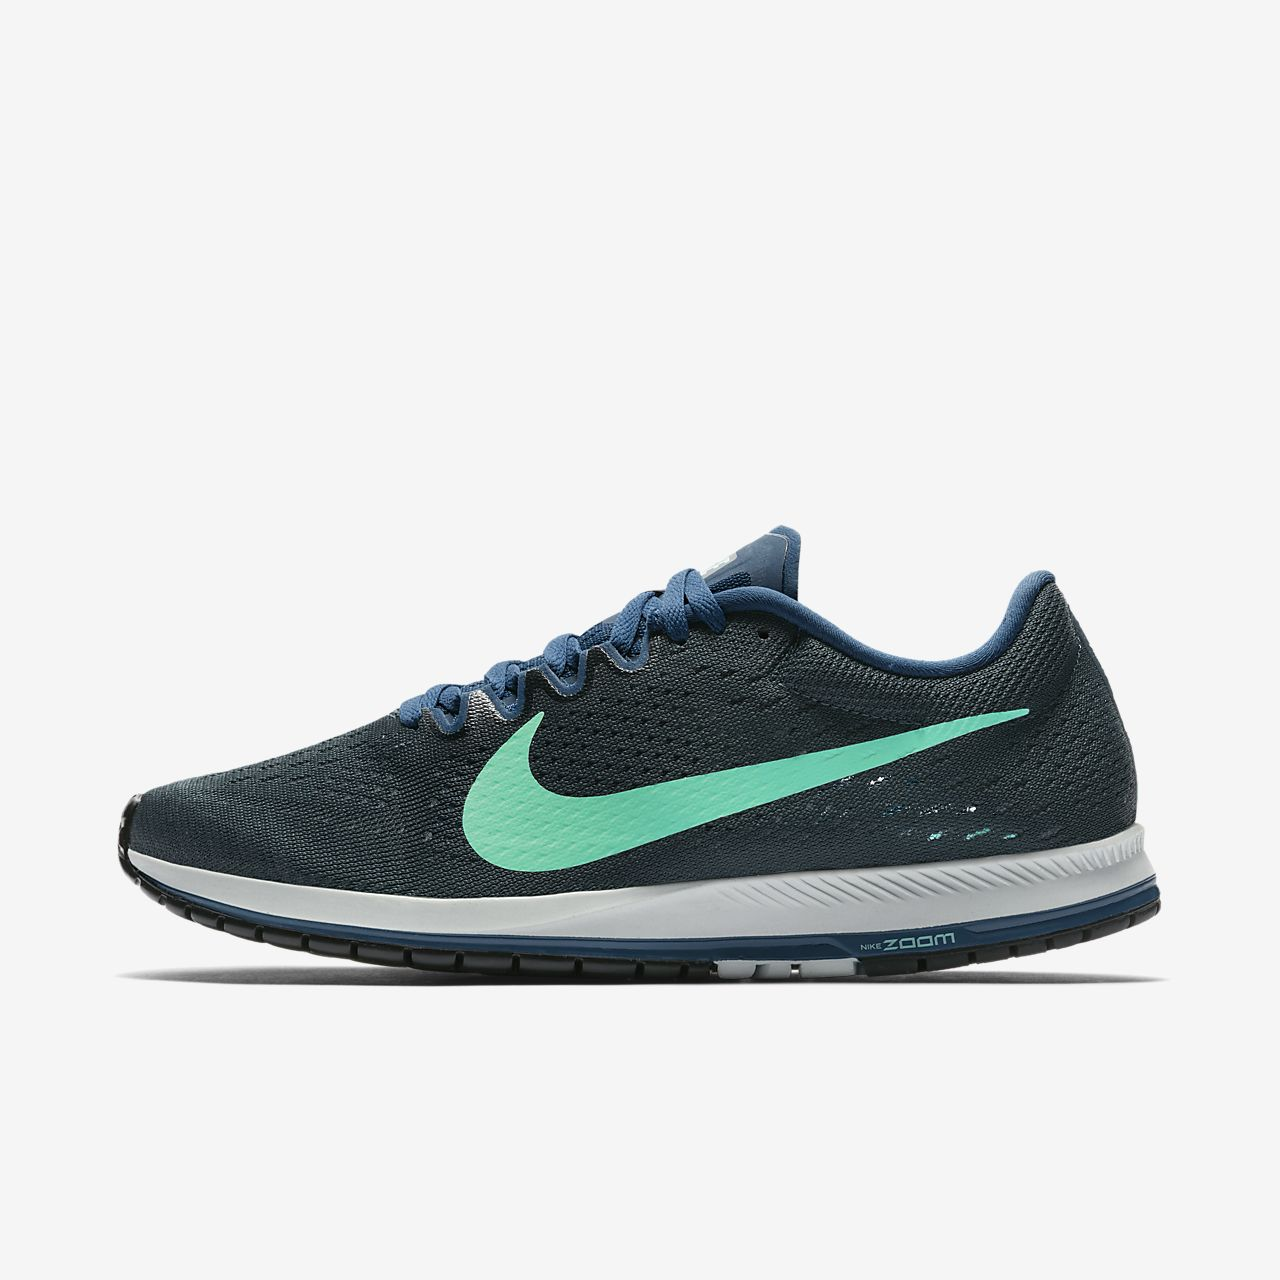 nike pegasus zoom blue nz